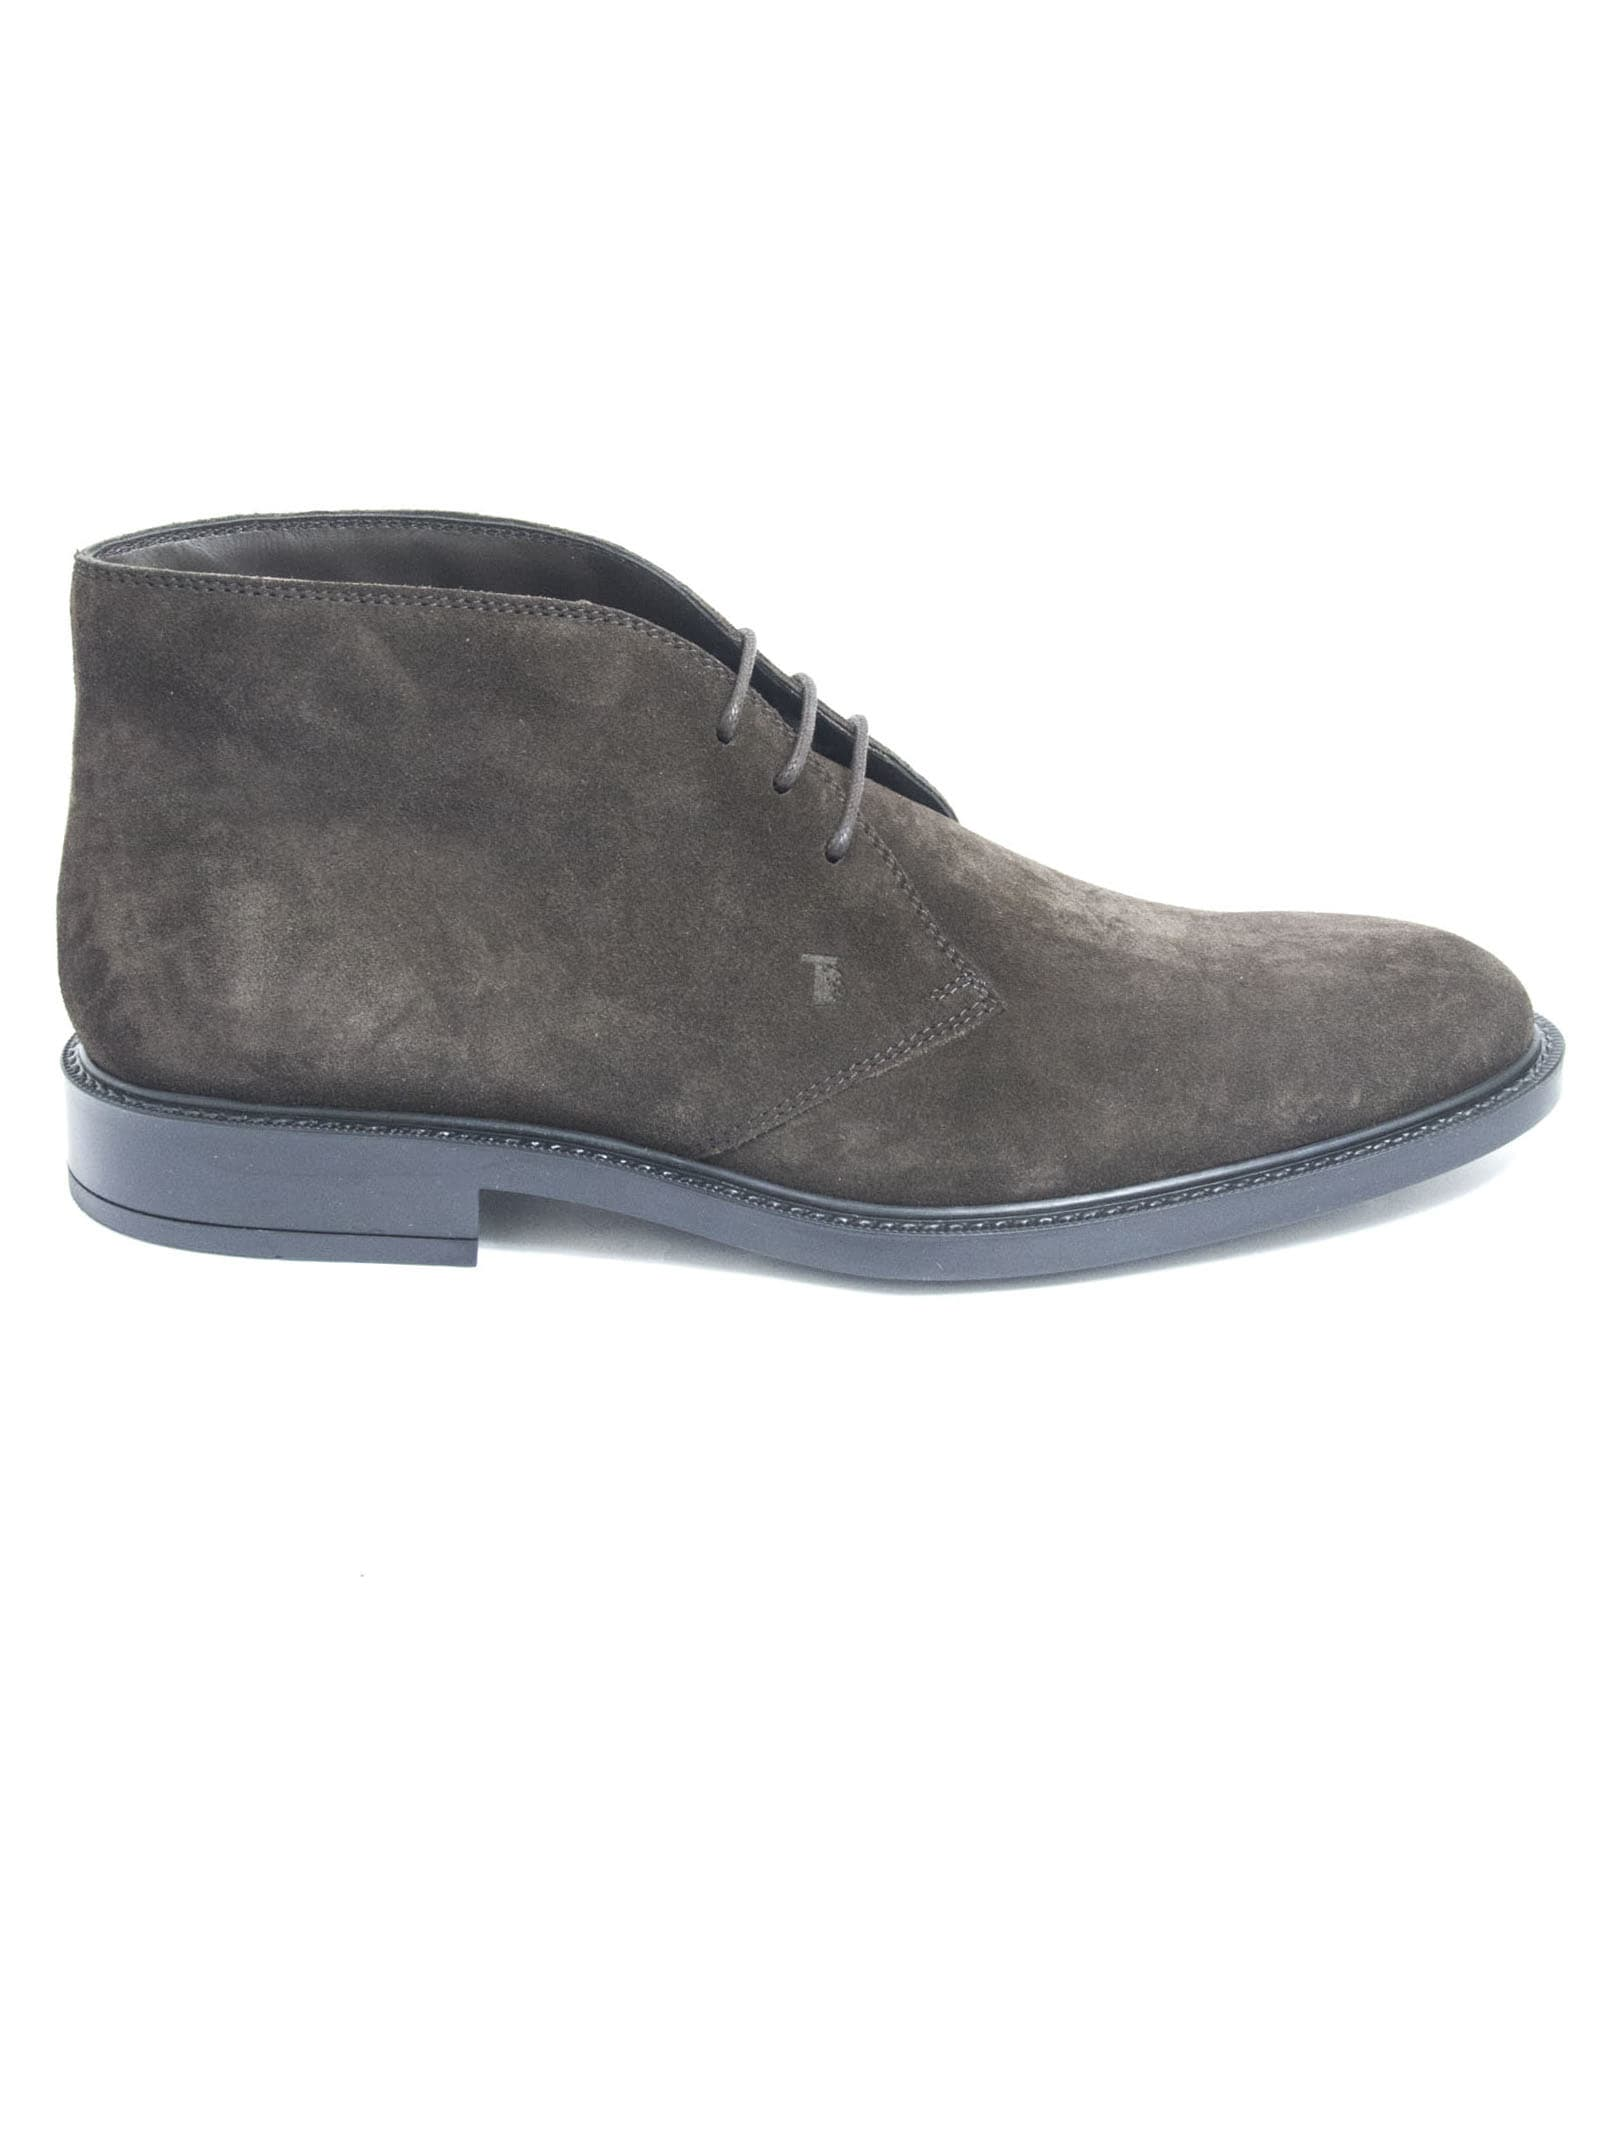 Tods Short Ankle Boots In Brown Suede